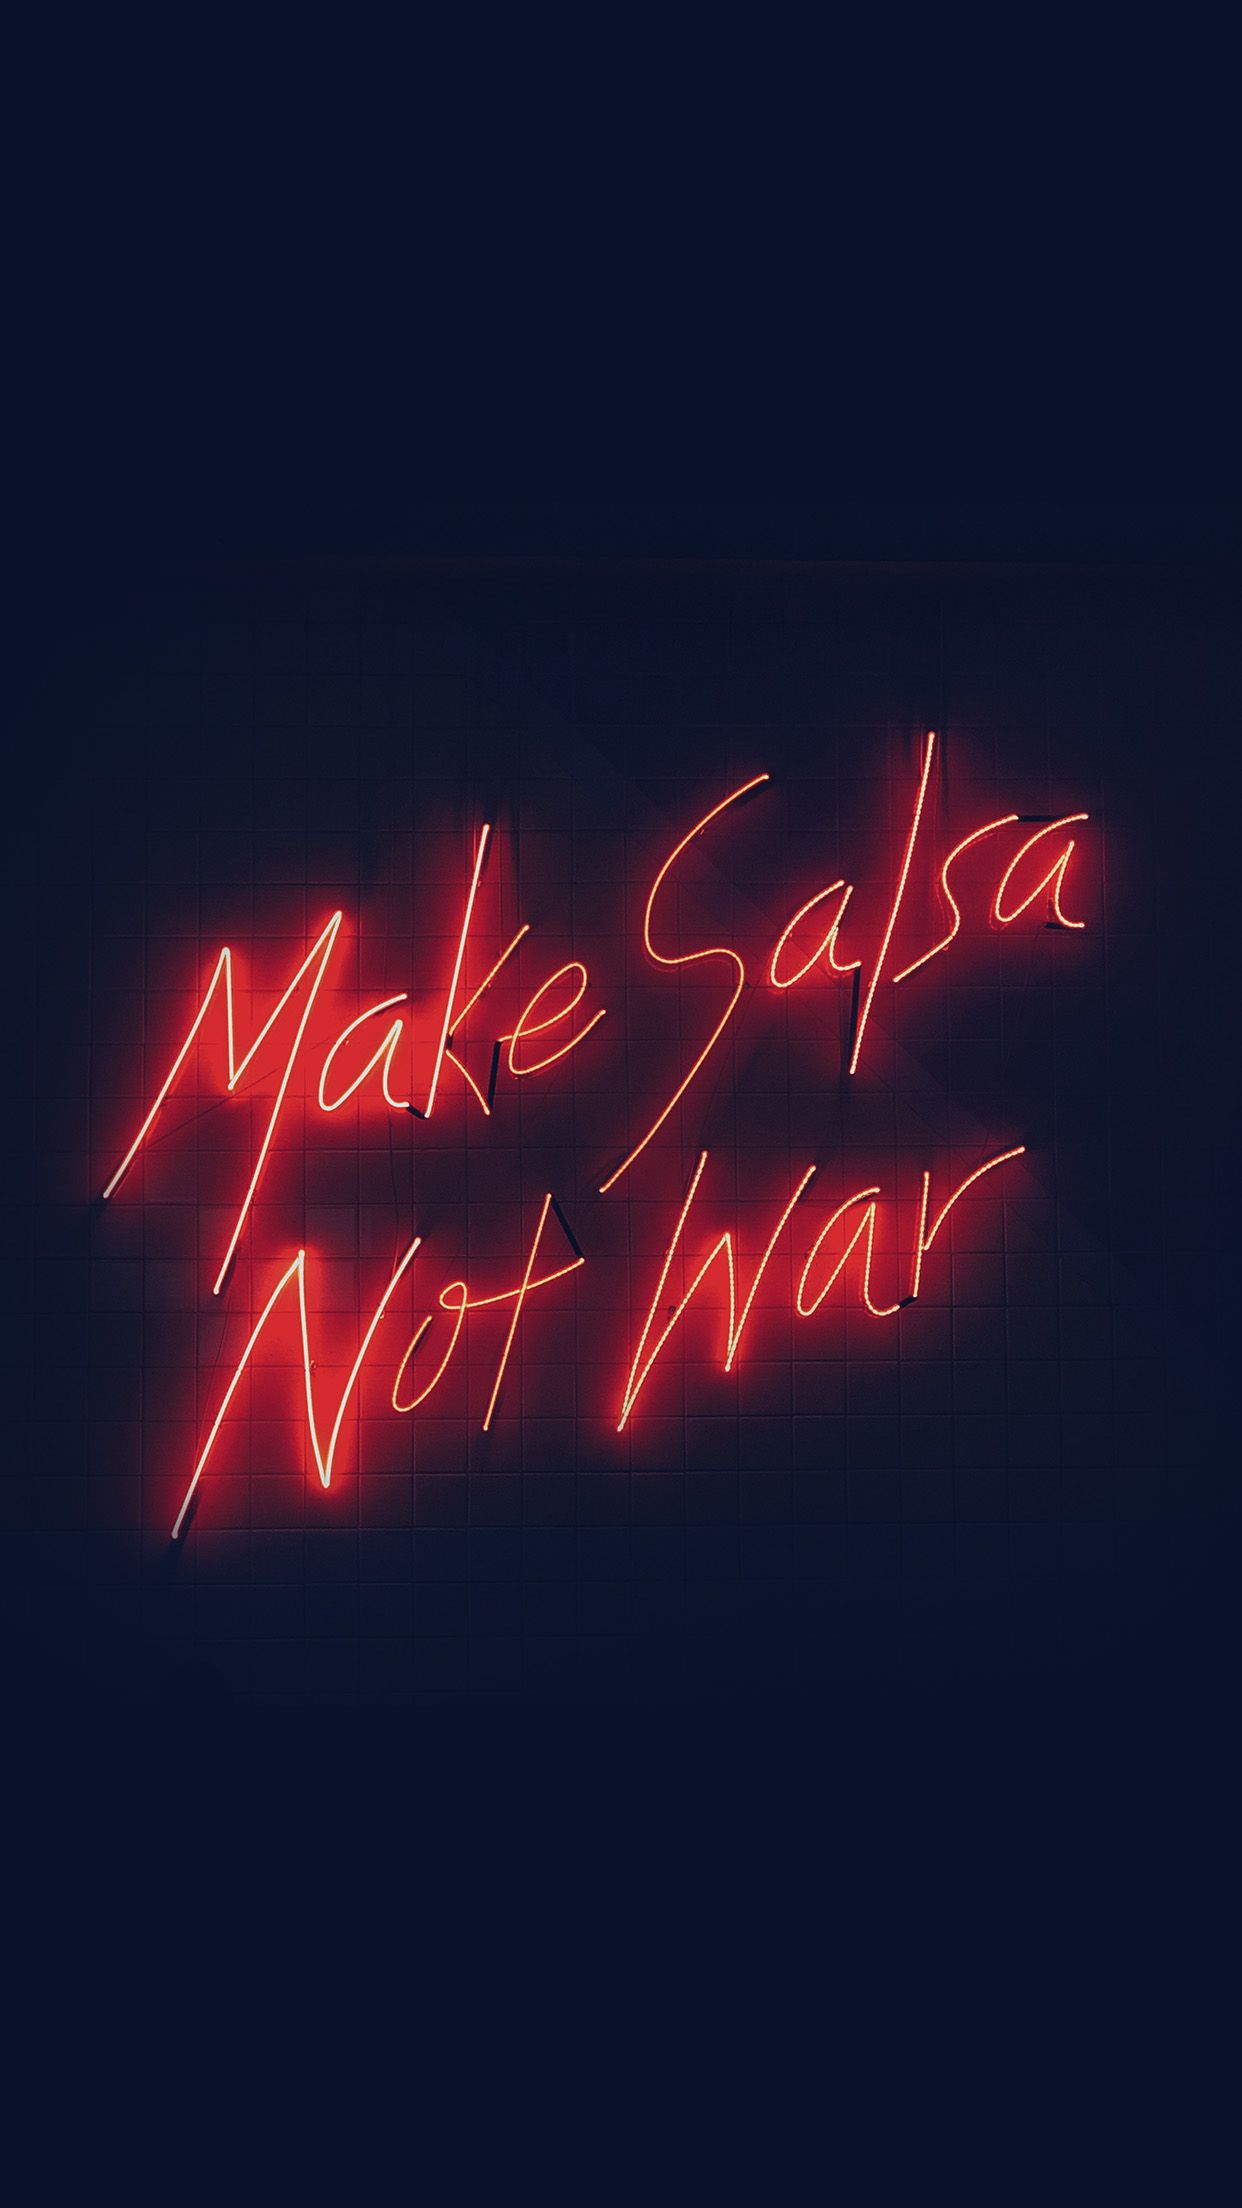 Make Salsa Not War iPhone 6 HD Wallpaper iPhone Wallpapers in 1242x2208